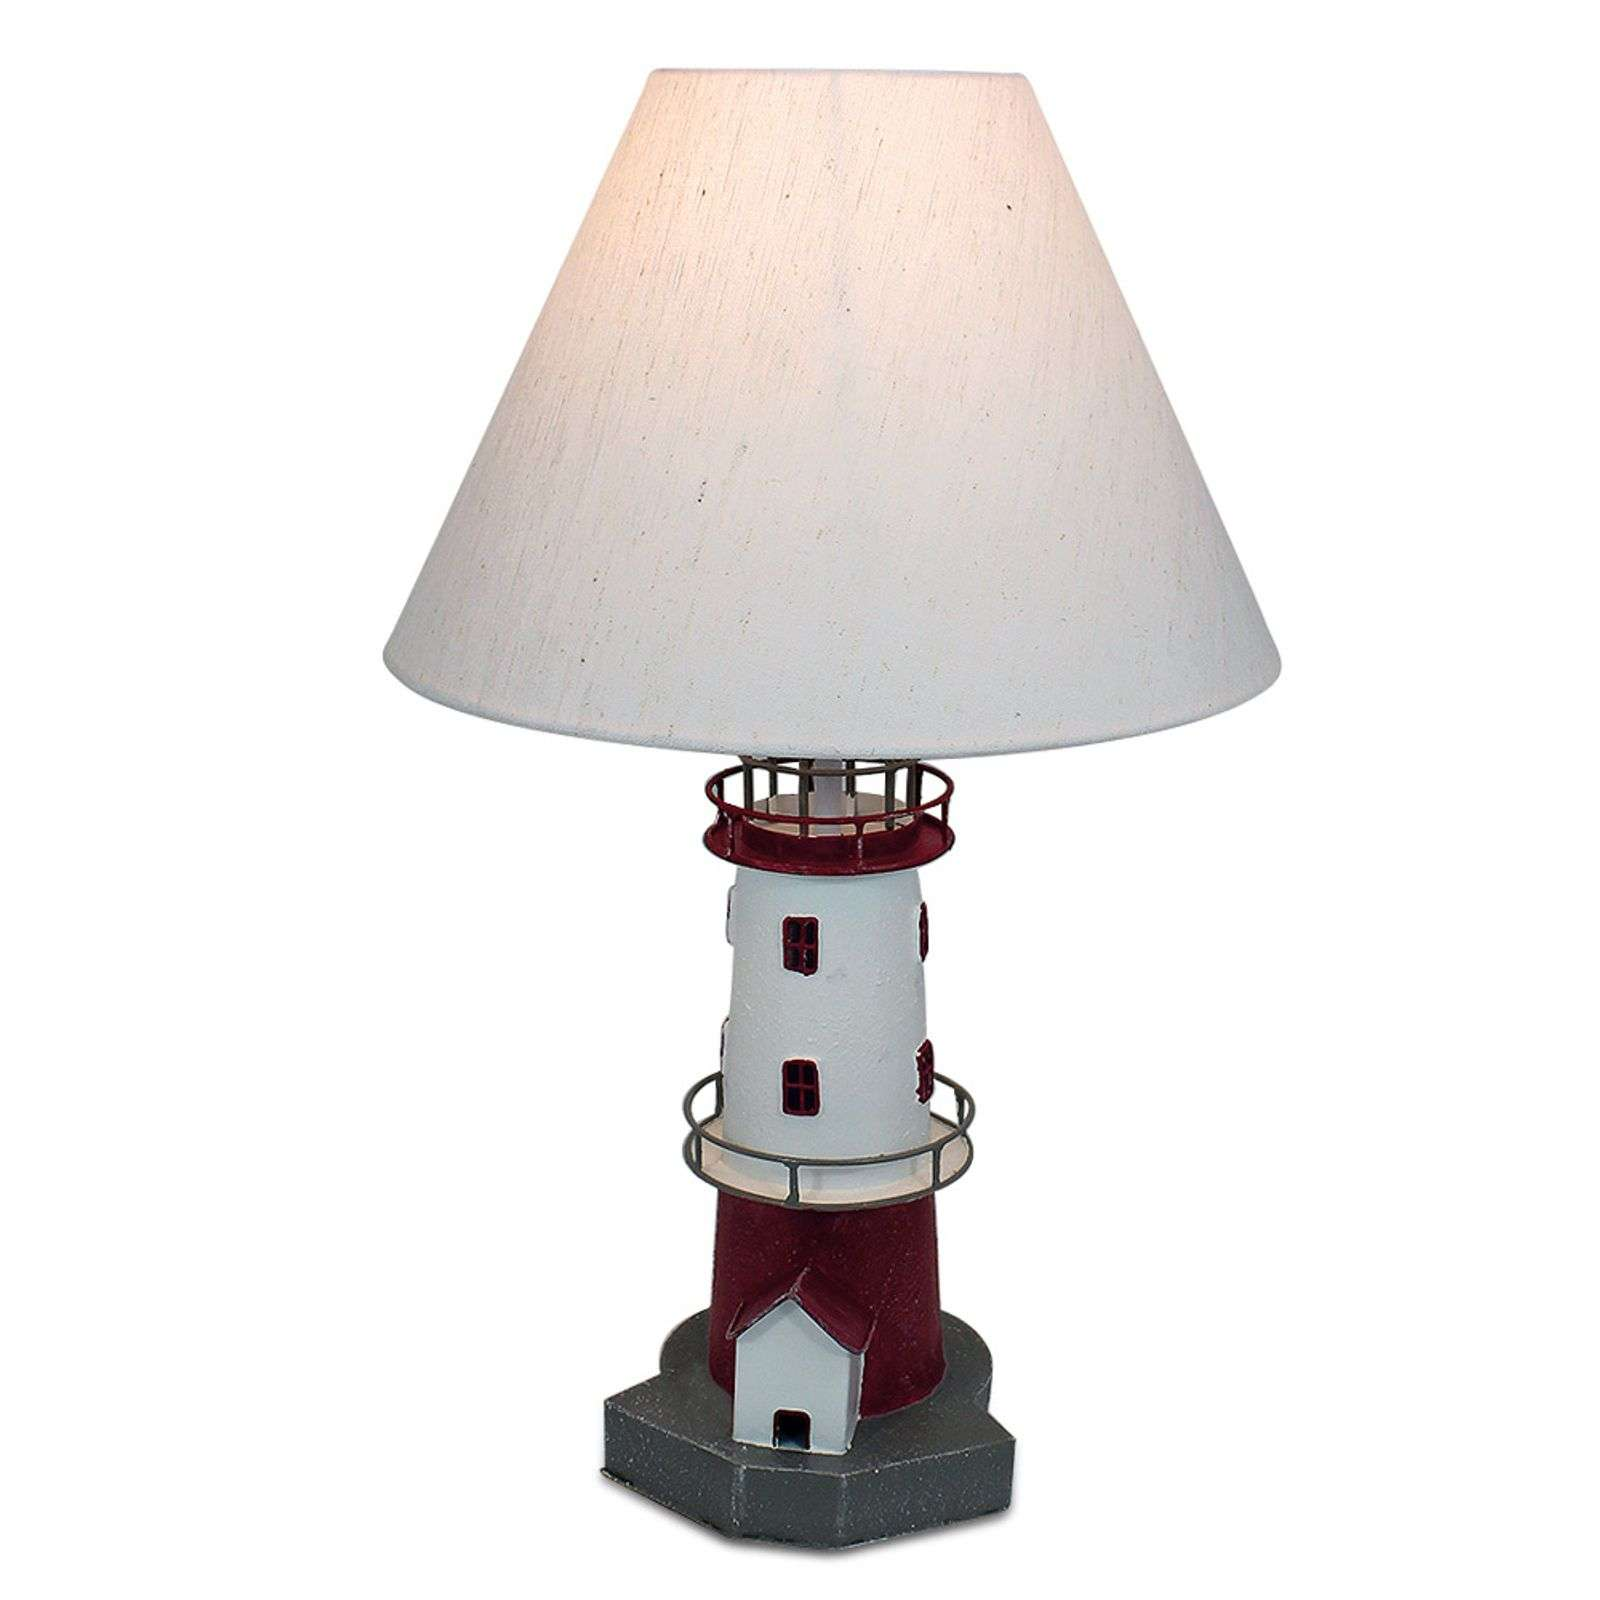 Lampe à poser phare à rayures rouges Piet